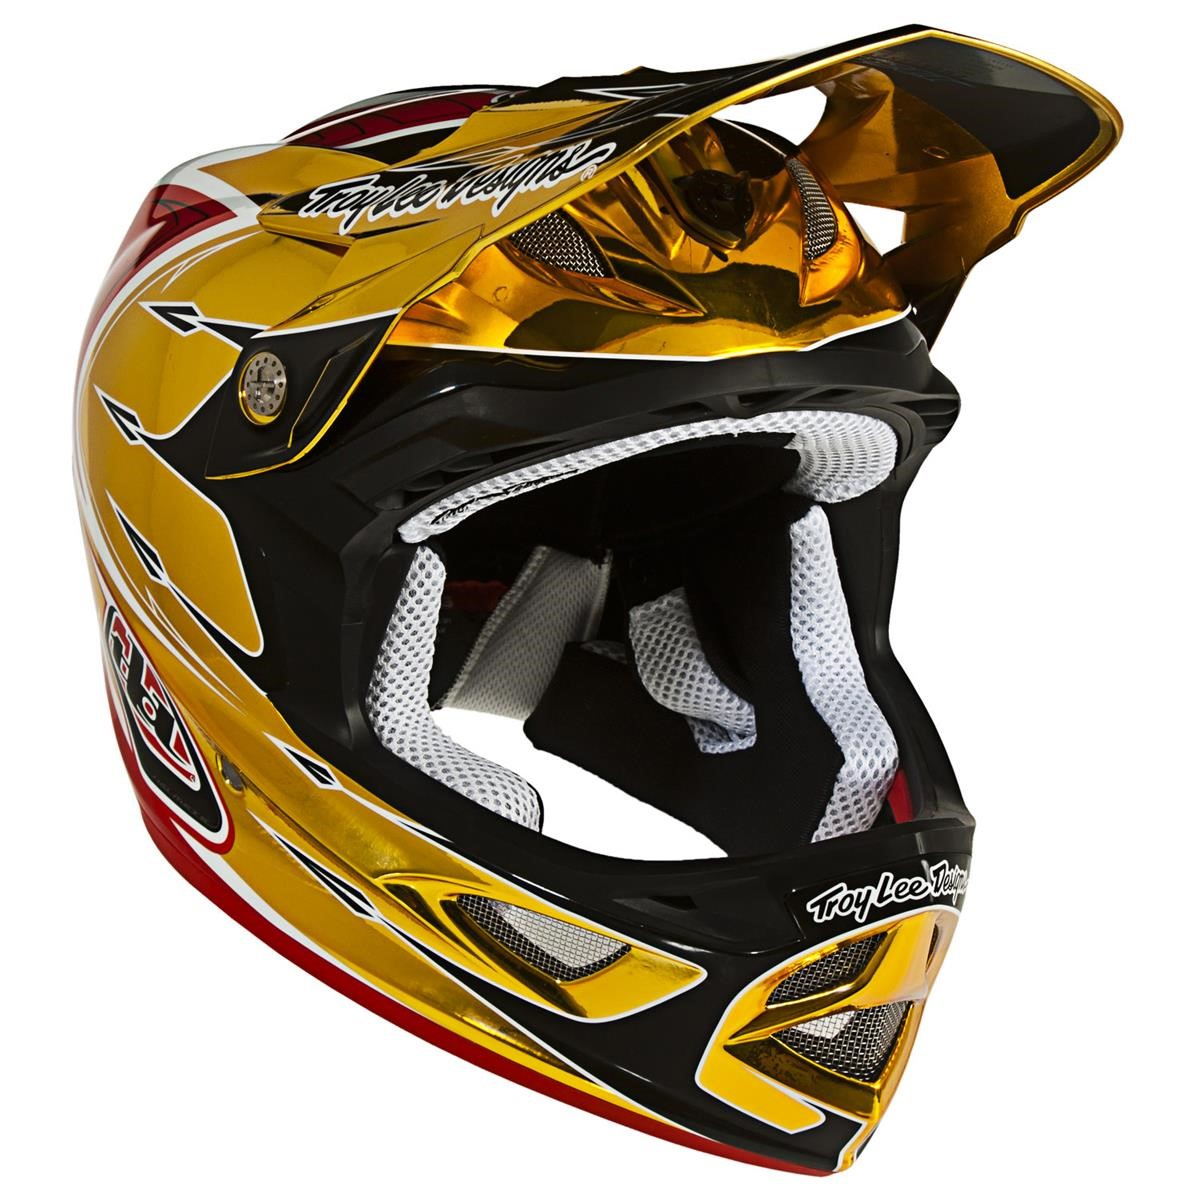 Troy lee designs d3 composite 2012 maciag offroad for Helm design